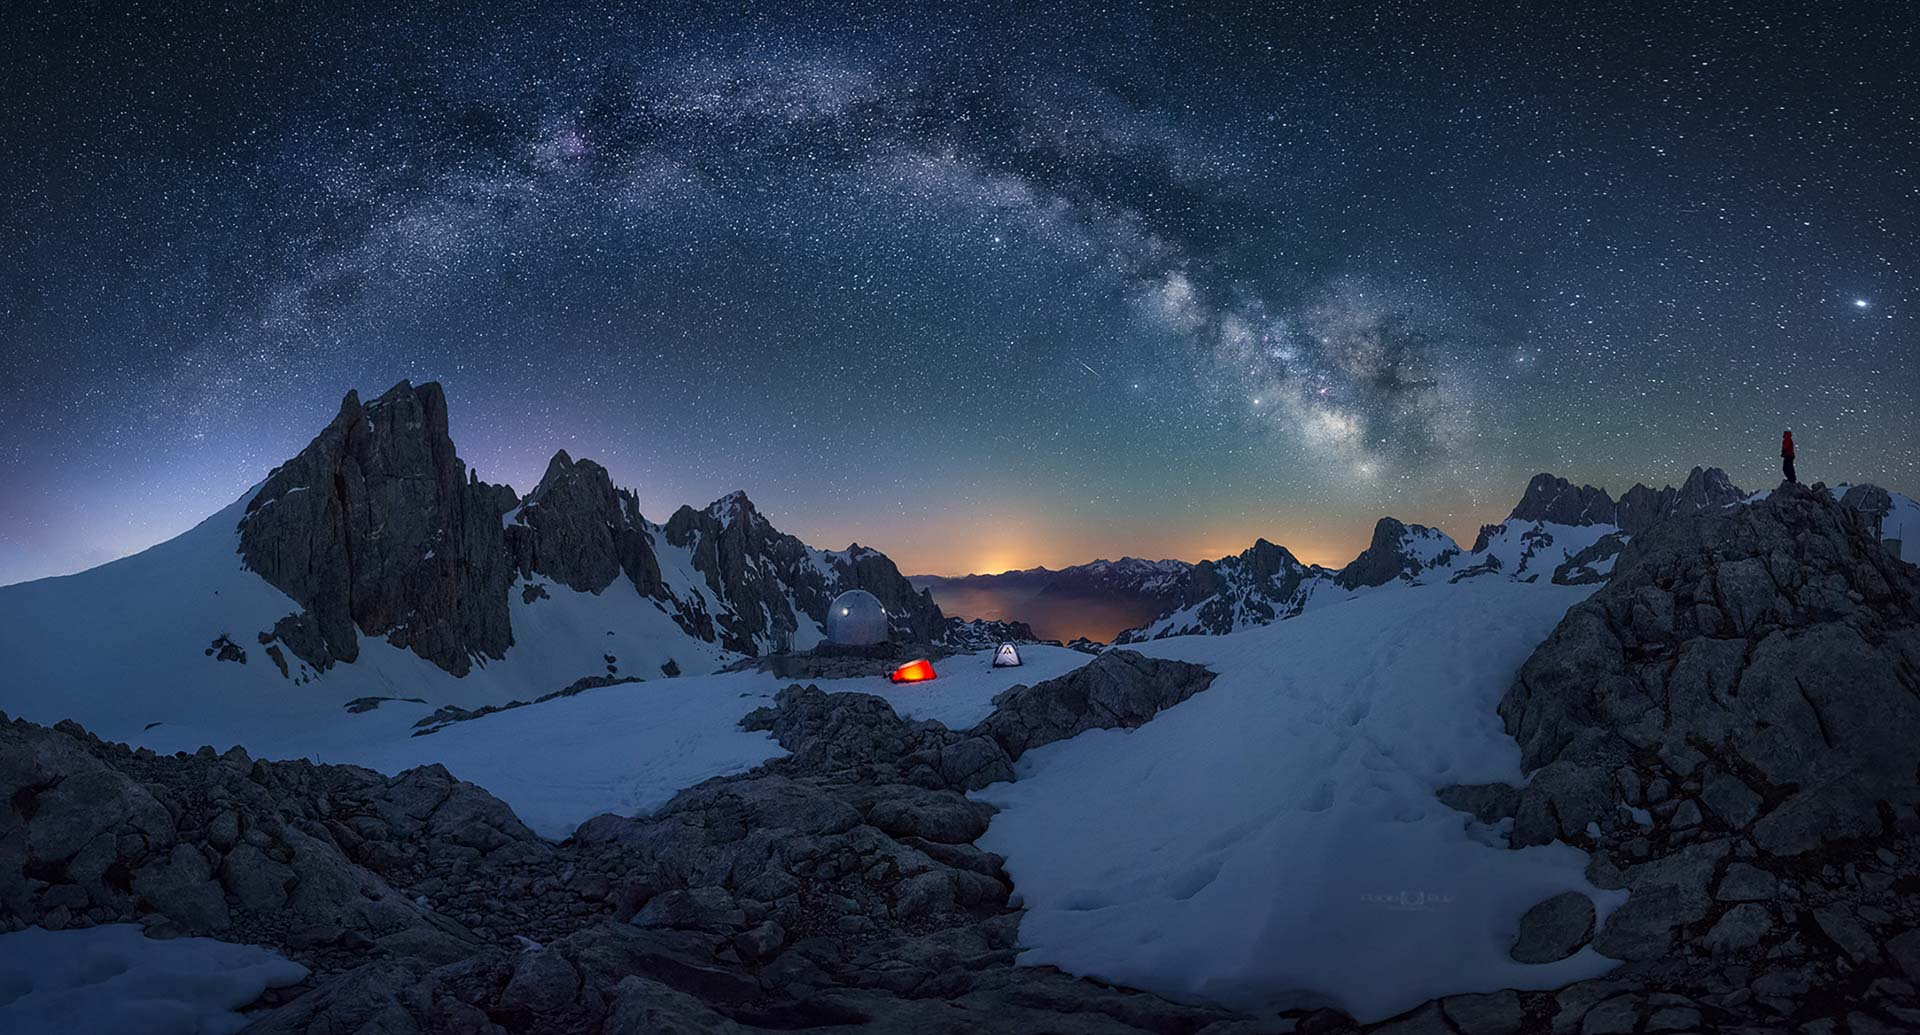 Milky Way Mountain pass snow night photography mountaineer